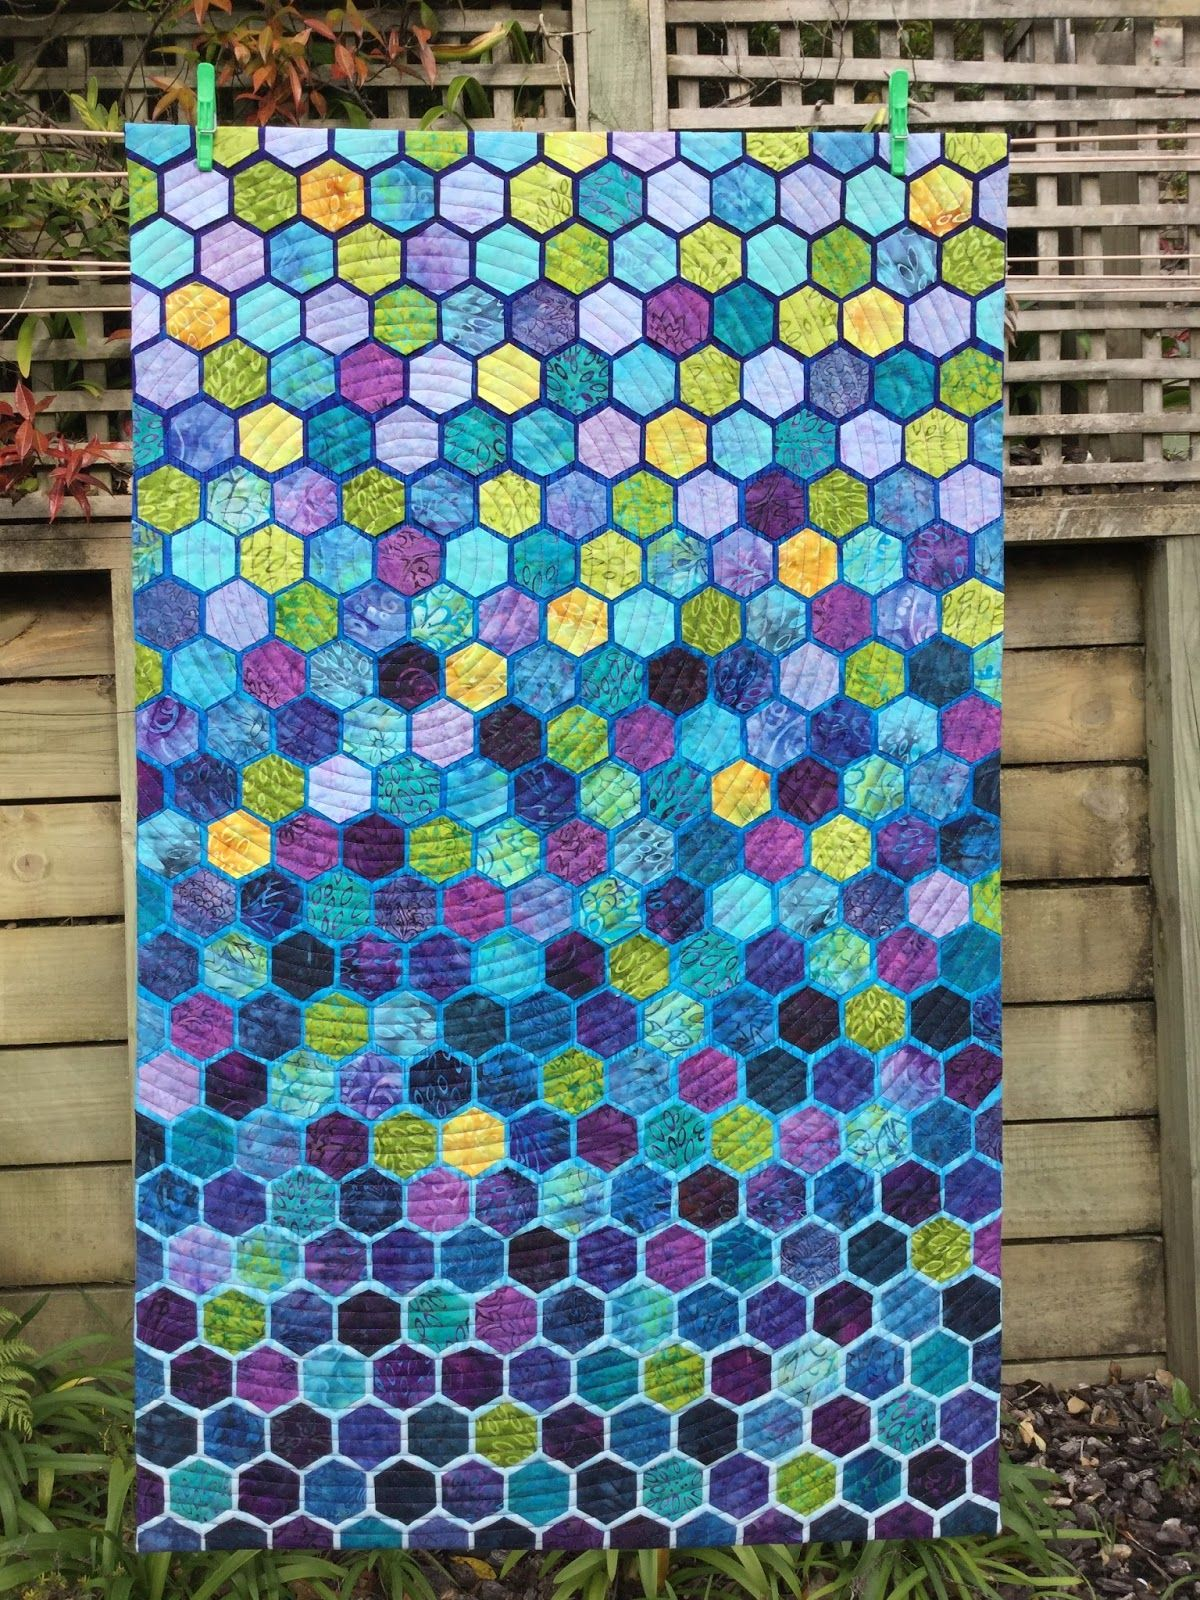 Honeycomb quilt by Wendy's Quilts and More | Hexagon quilts ... : honeycomb quilt - Adamdwight.com